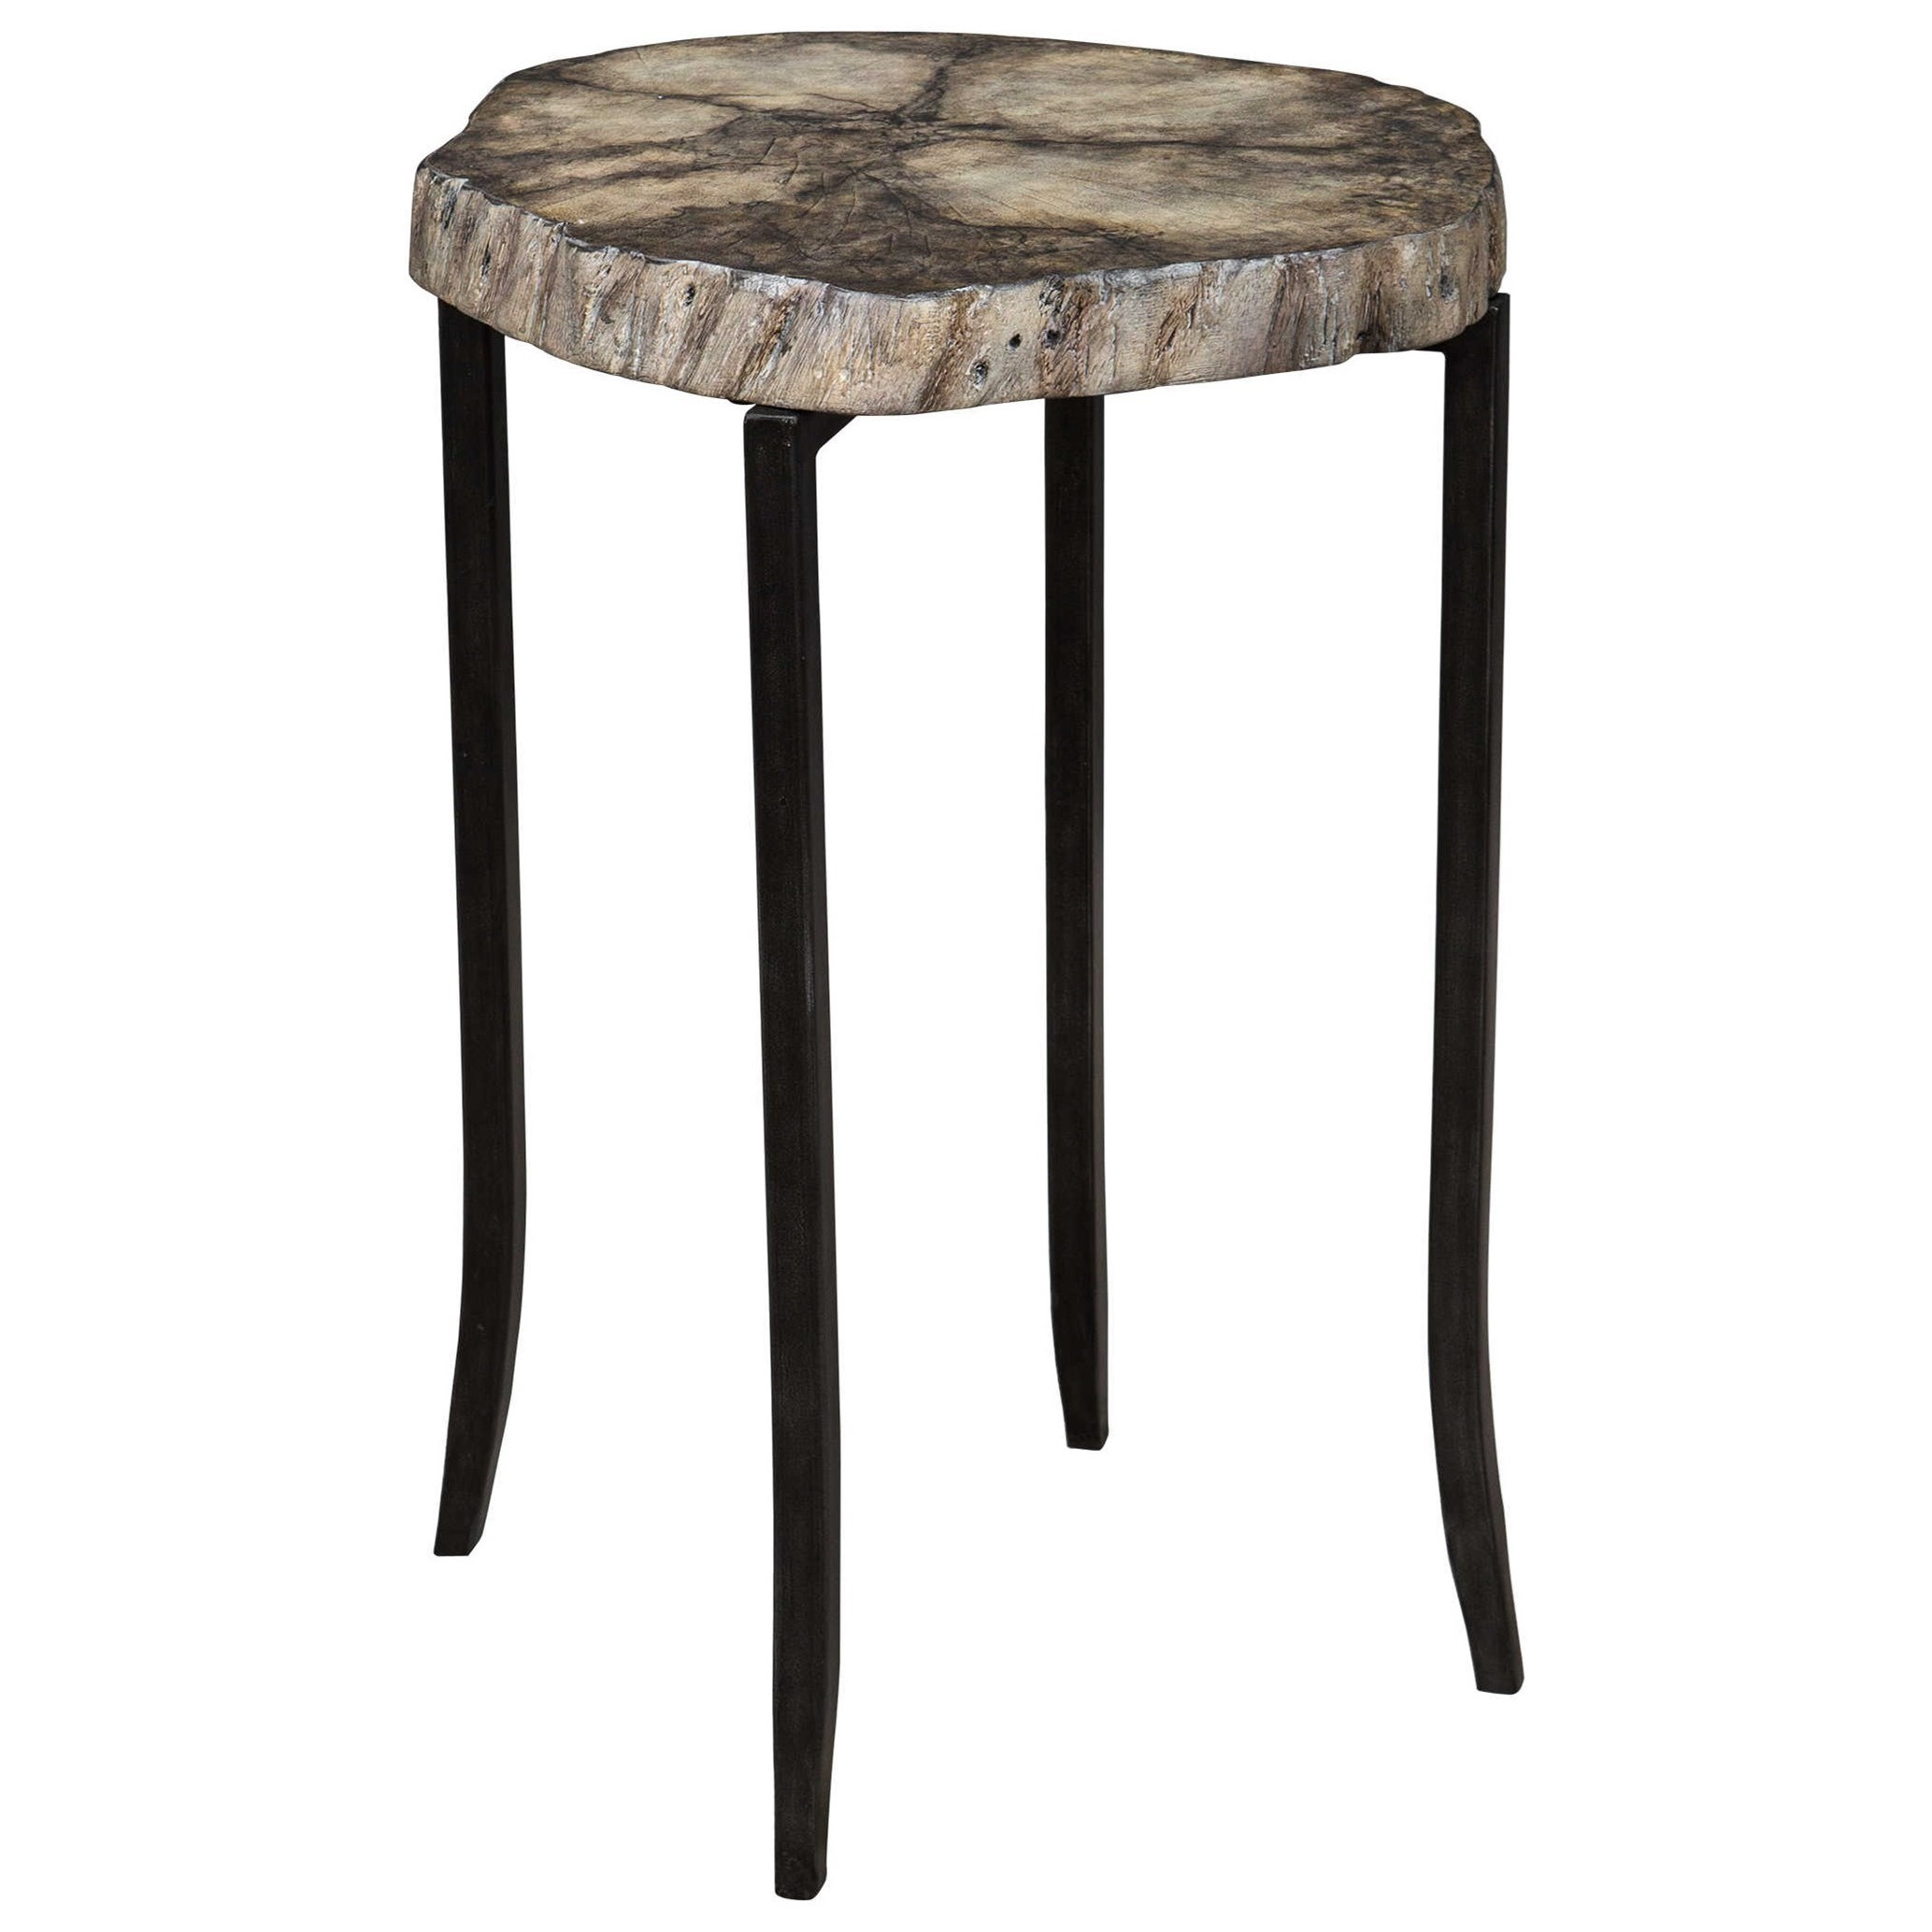 Accent Furniture - Occasional Tables Stiles Rustic Accent Table by Uttermost at Del Sol Furniture